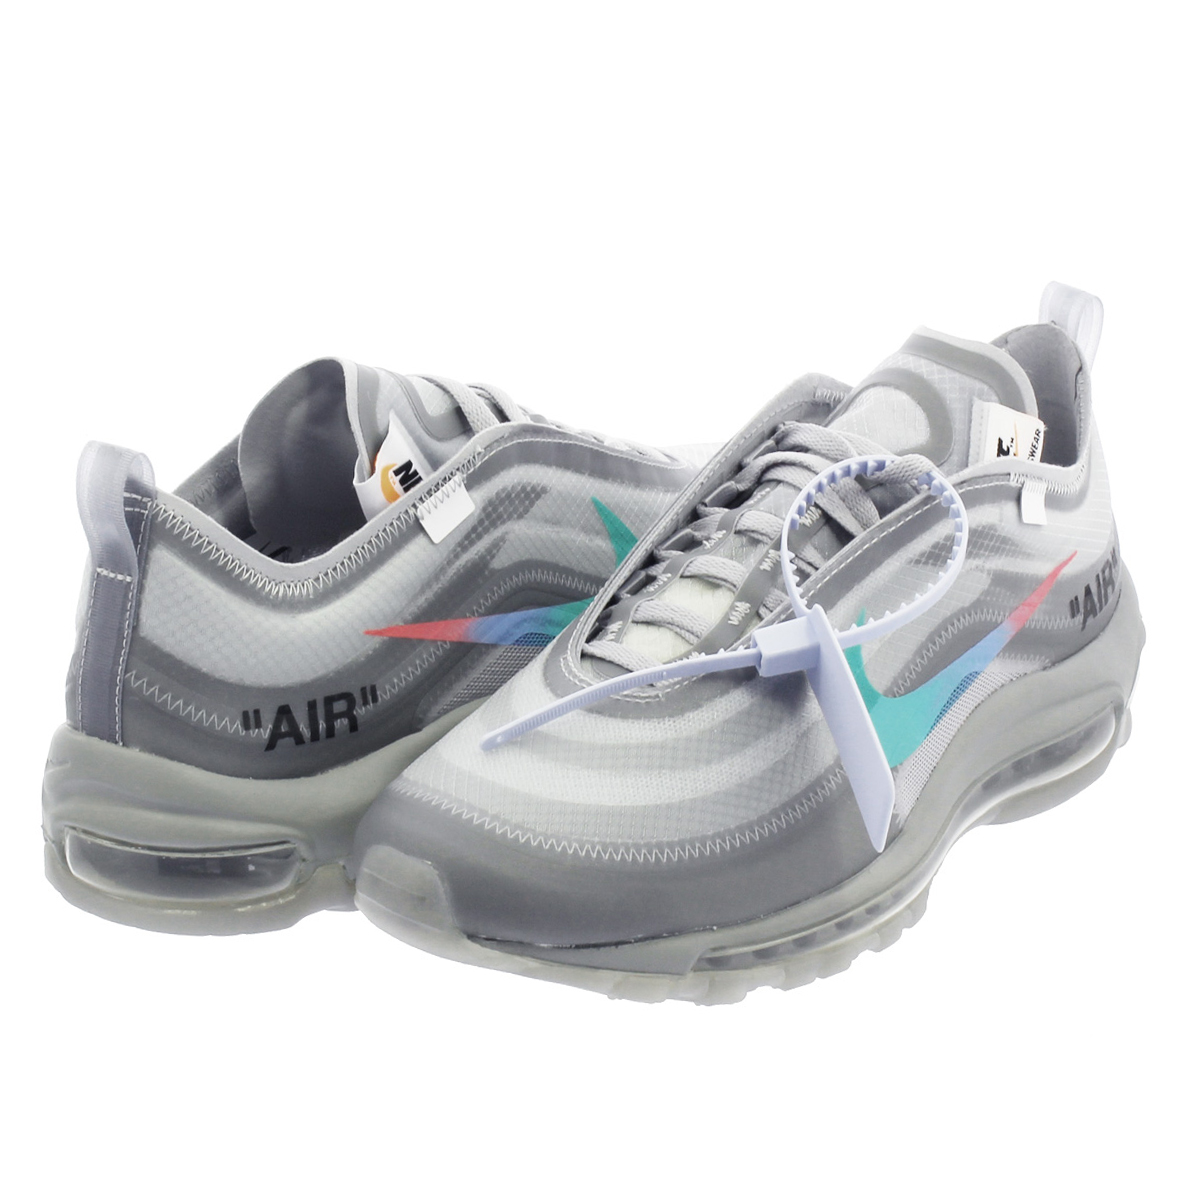 premium selection e73e4 825c2 NIKE AIR MAX 97 Kie Ney AMAX 97 OFF WHITE WOLF GREY WHITE MENTA aj4585-101